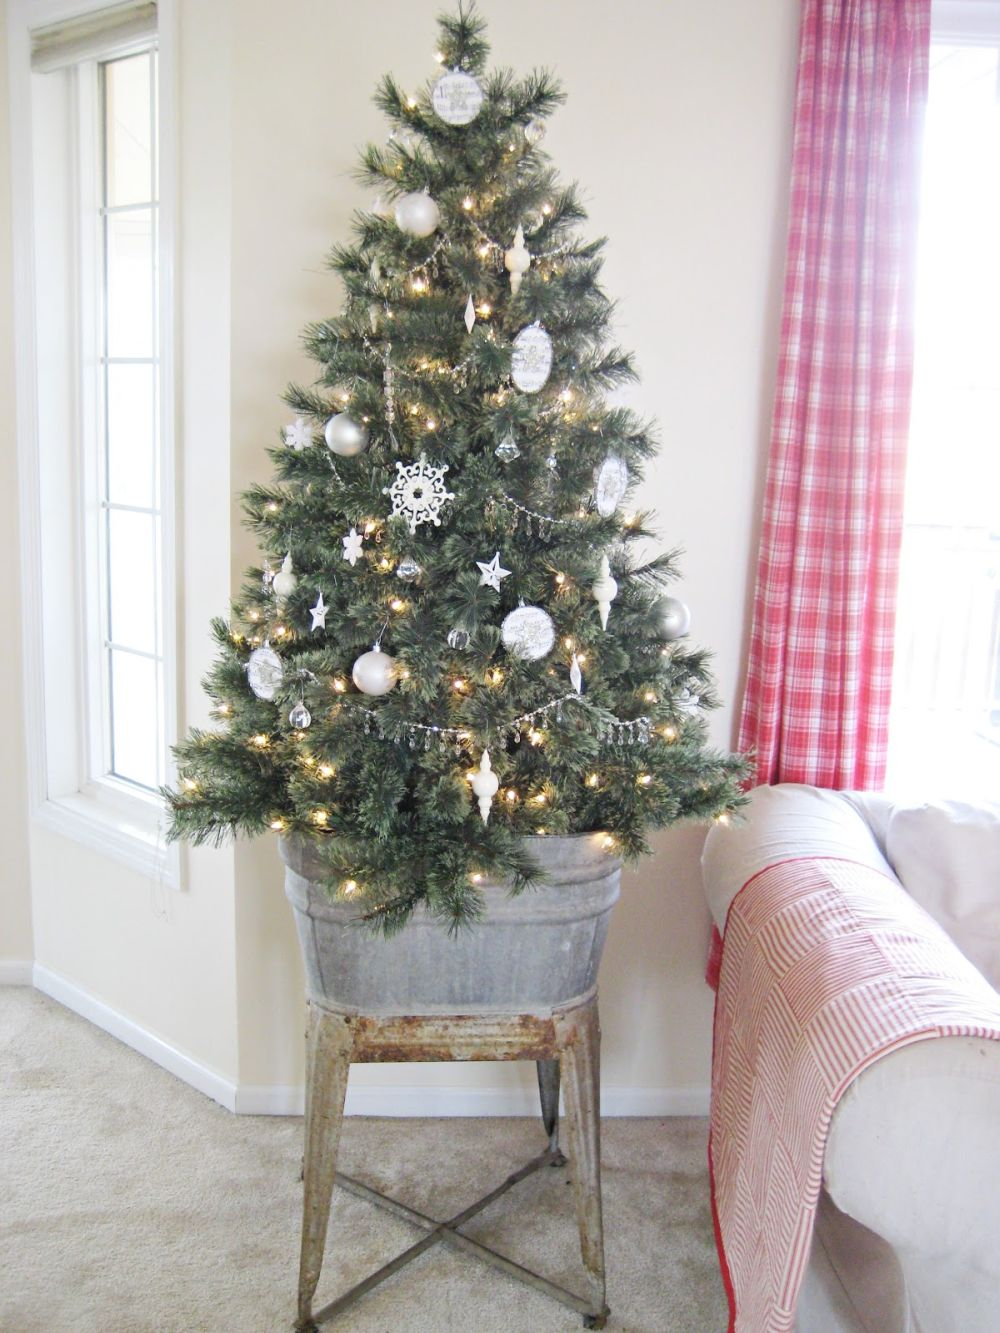 How to decorate with mini christmas trees cute and practical ideas - Small christmas tree ideas ...